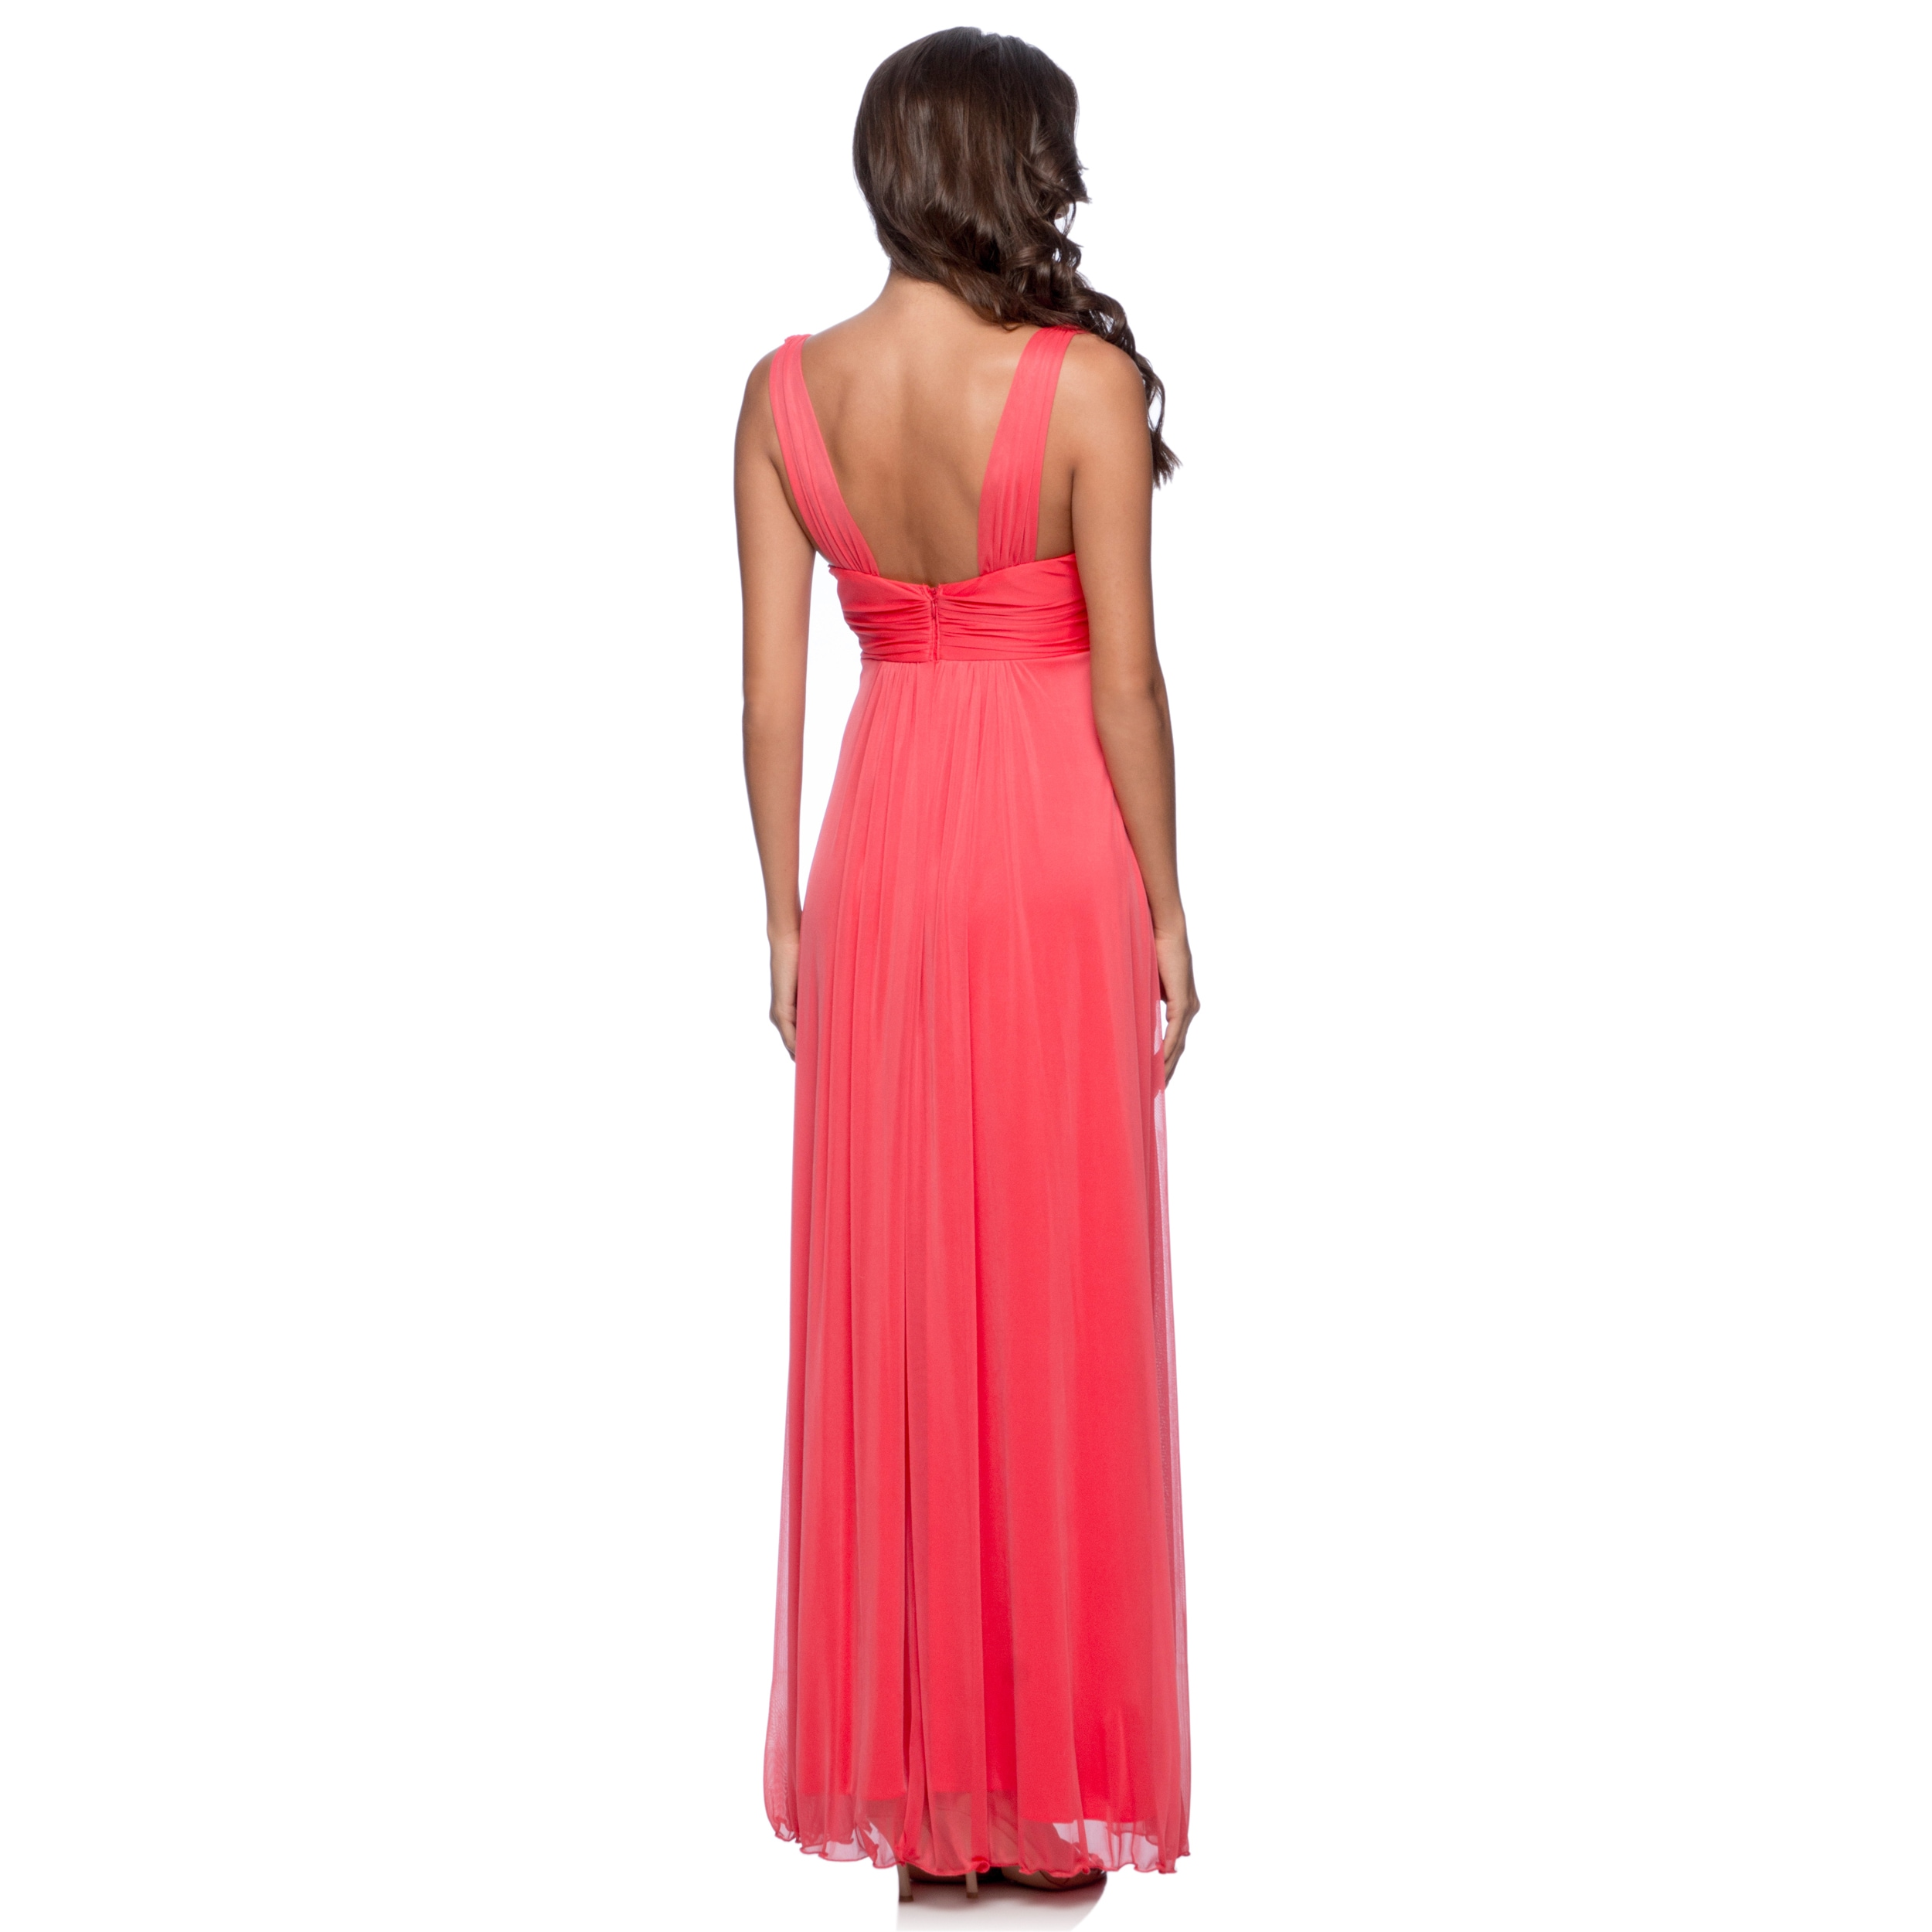 2be26e13cf3 Shop DFI Women s Long Evening Gown - Free Shipping On Orders Over  45 -  Overstock - 9293790